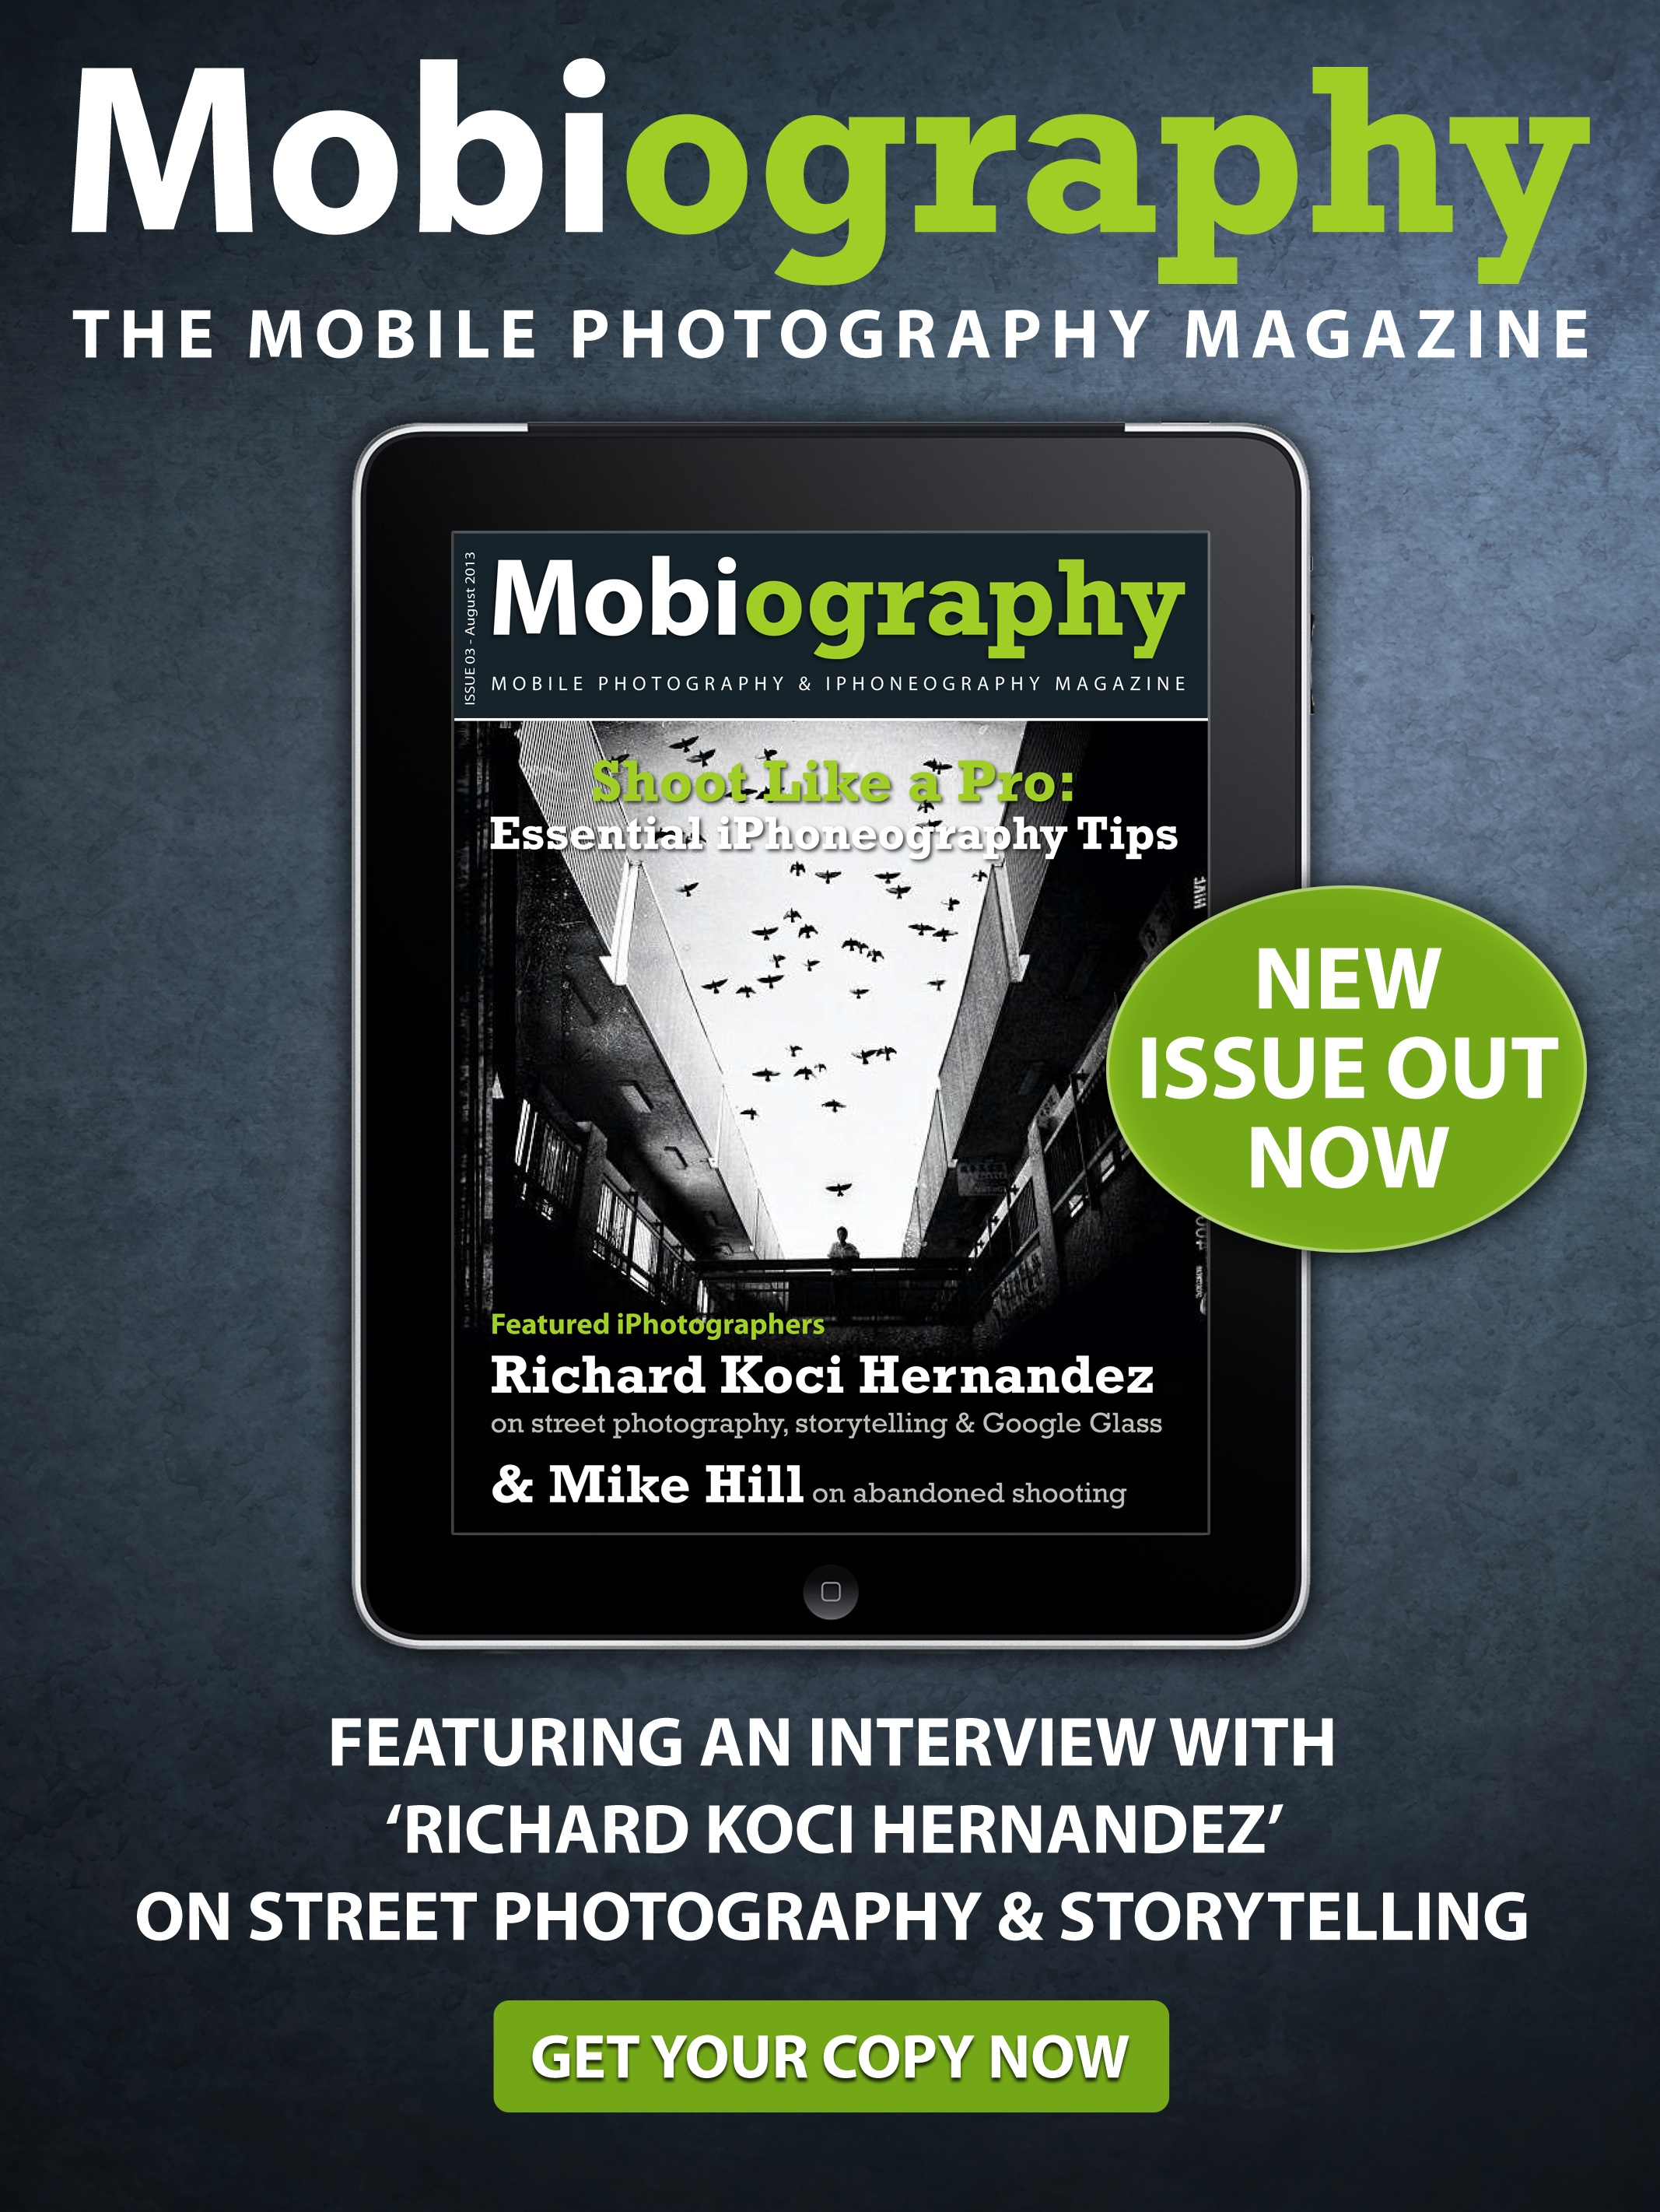 Mobiography for mobile photography